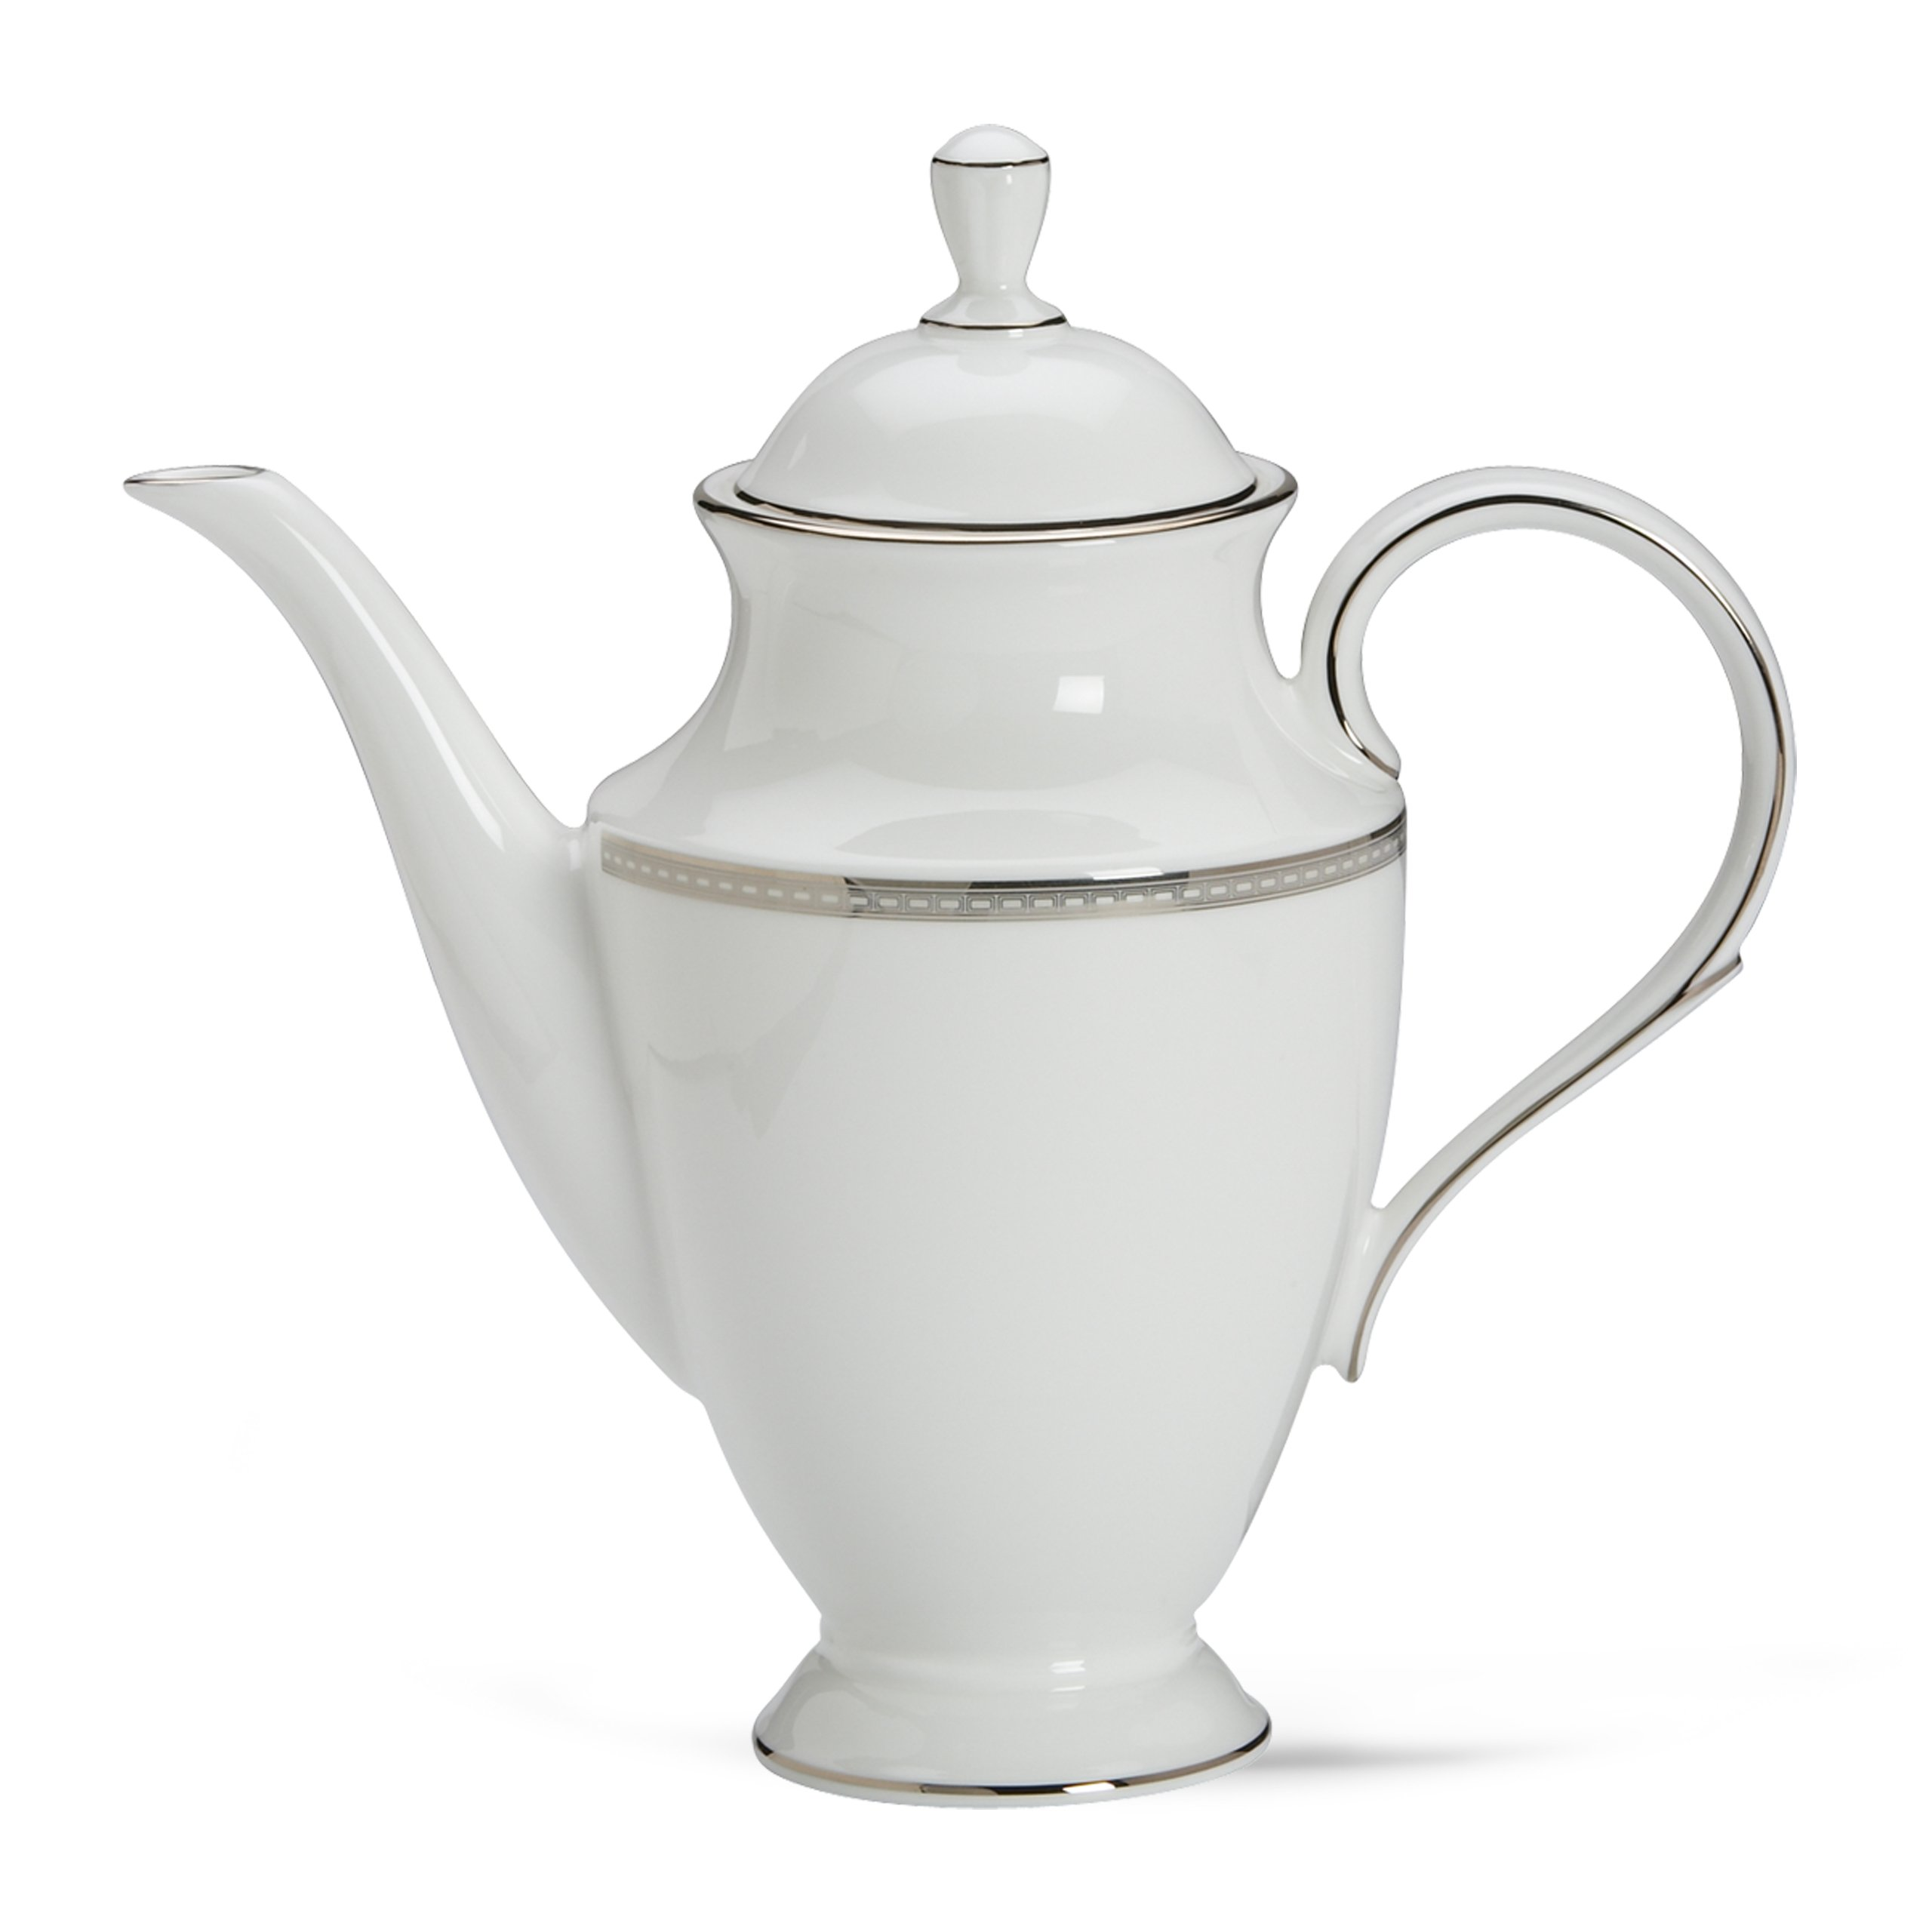 Lenox 6230205 Murray Hill Coffeepot, 2.95 LB, White